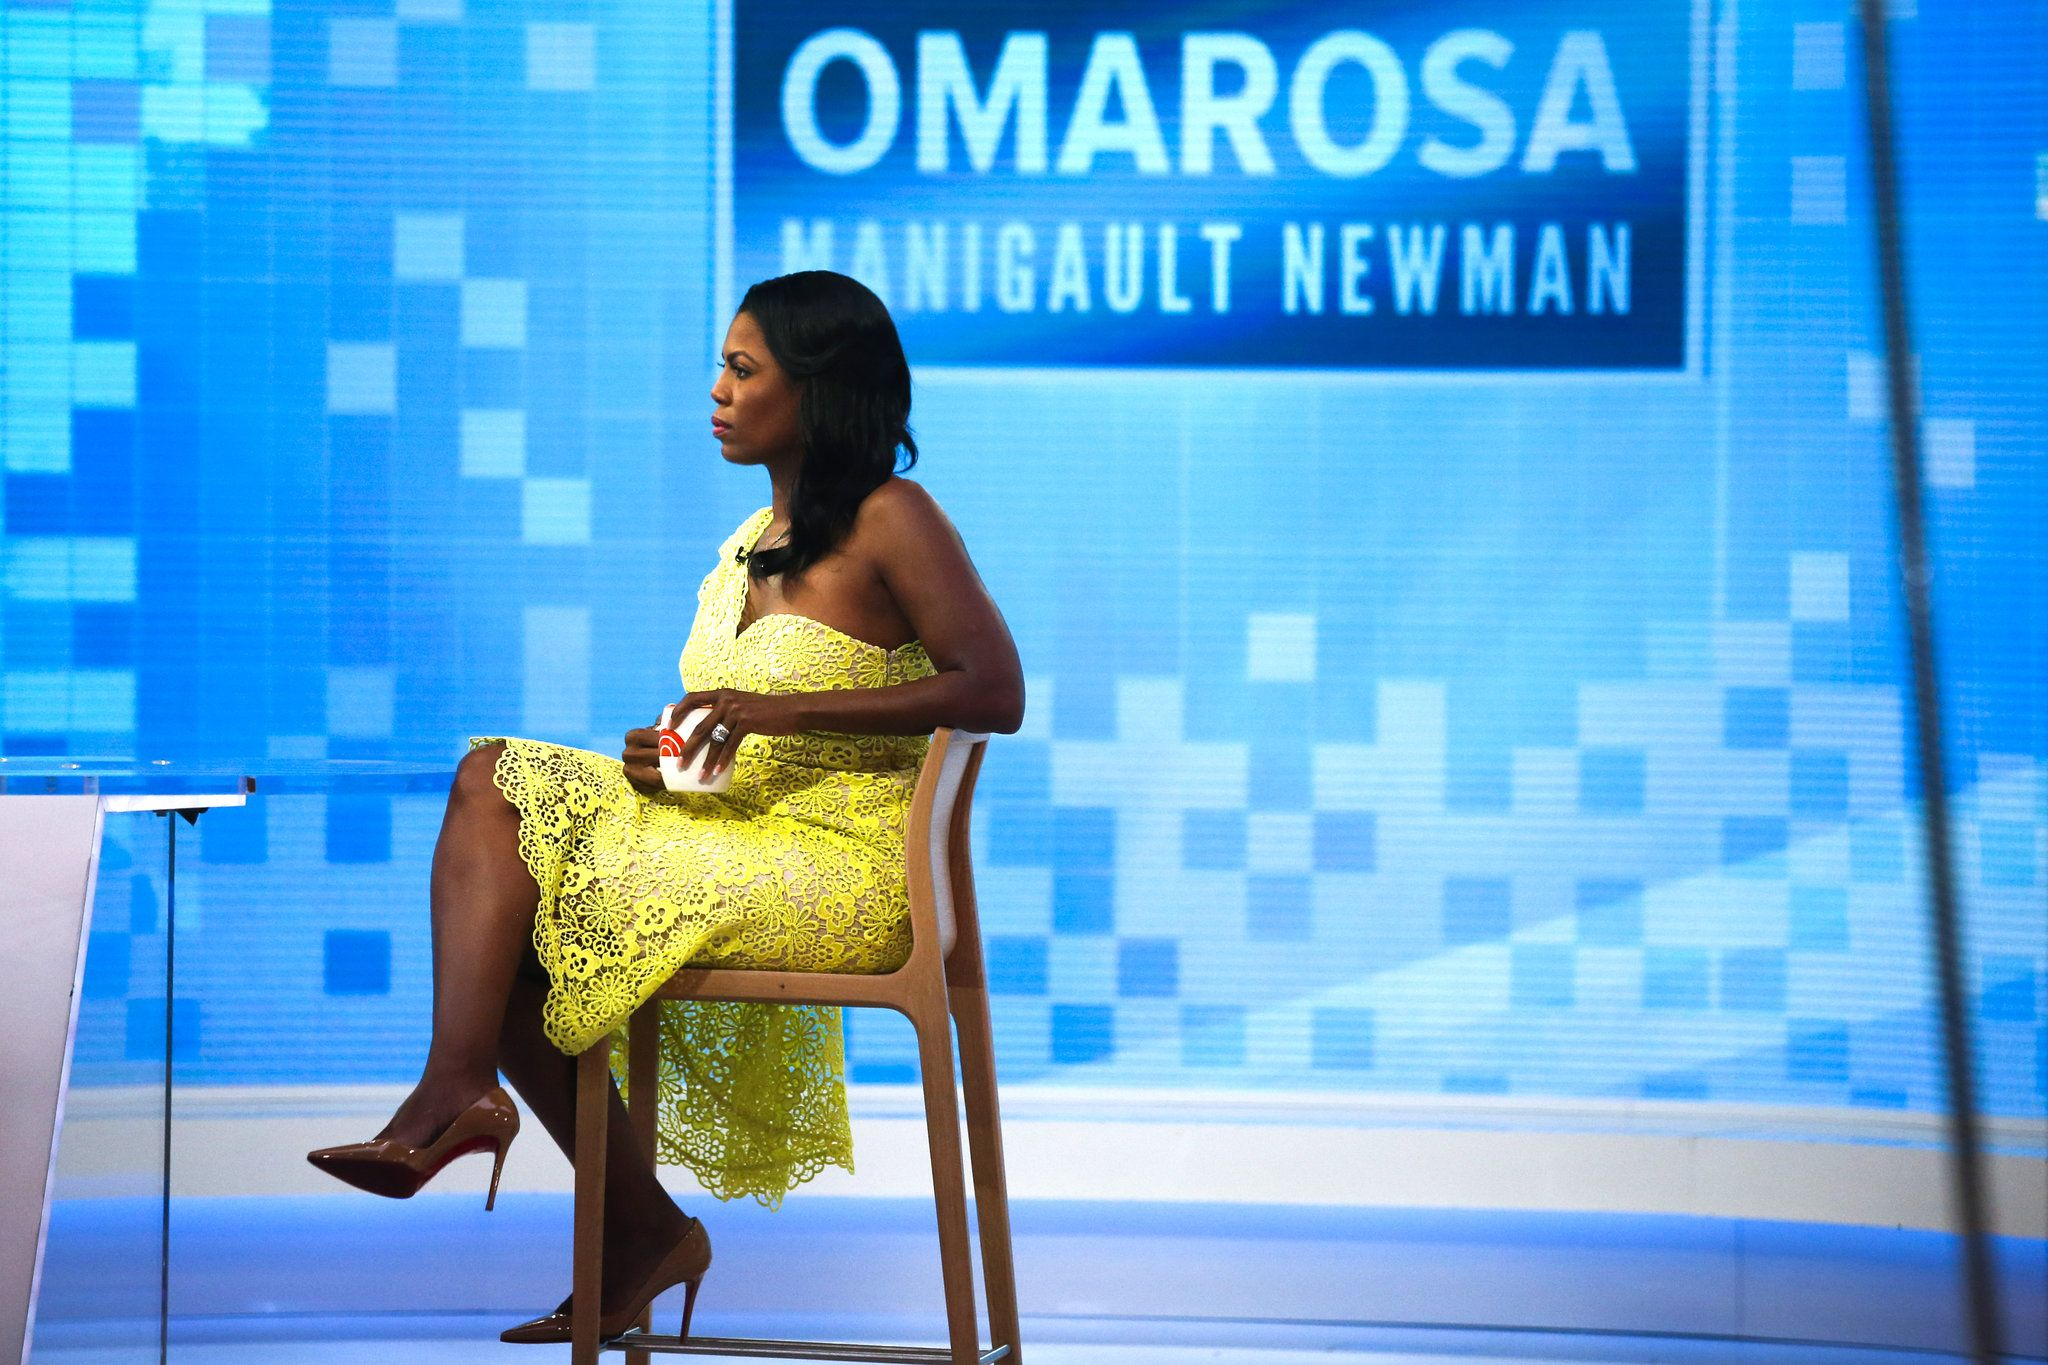 Trump Calls Omarosa Manigault Newman That Dog in His Latest Insult